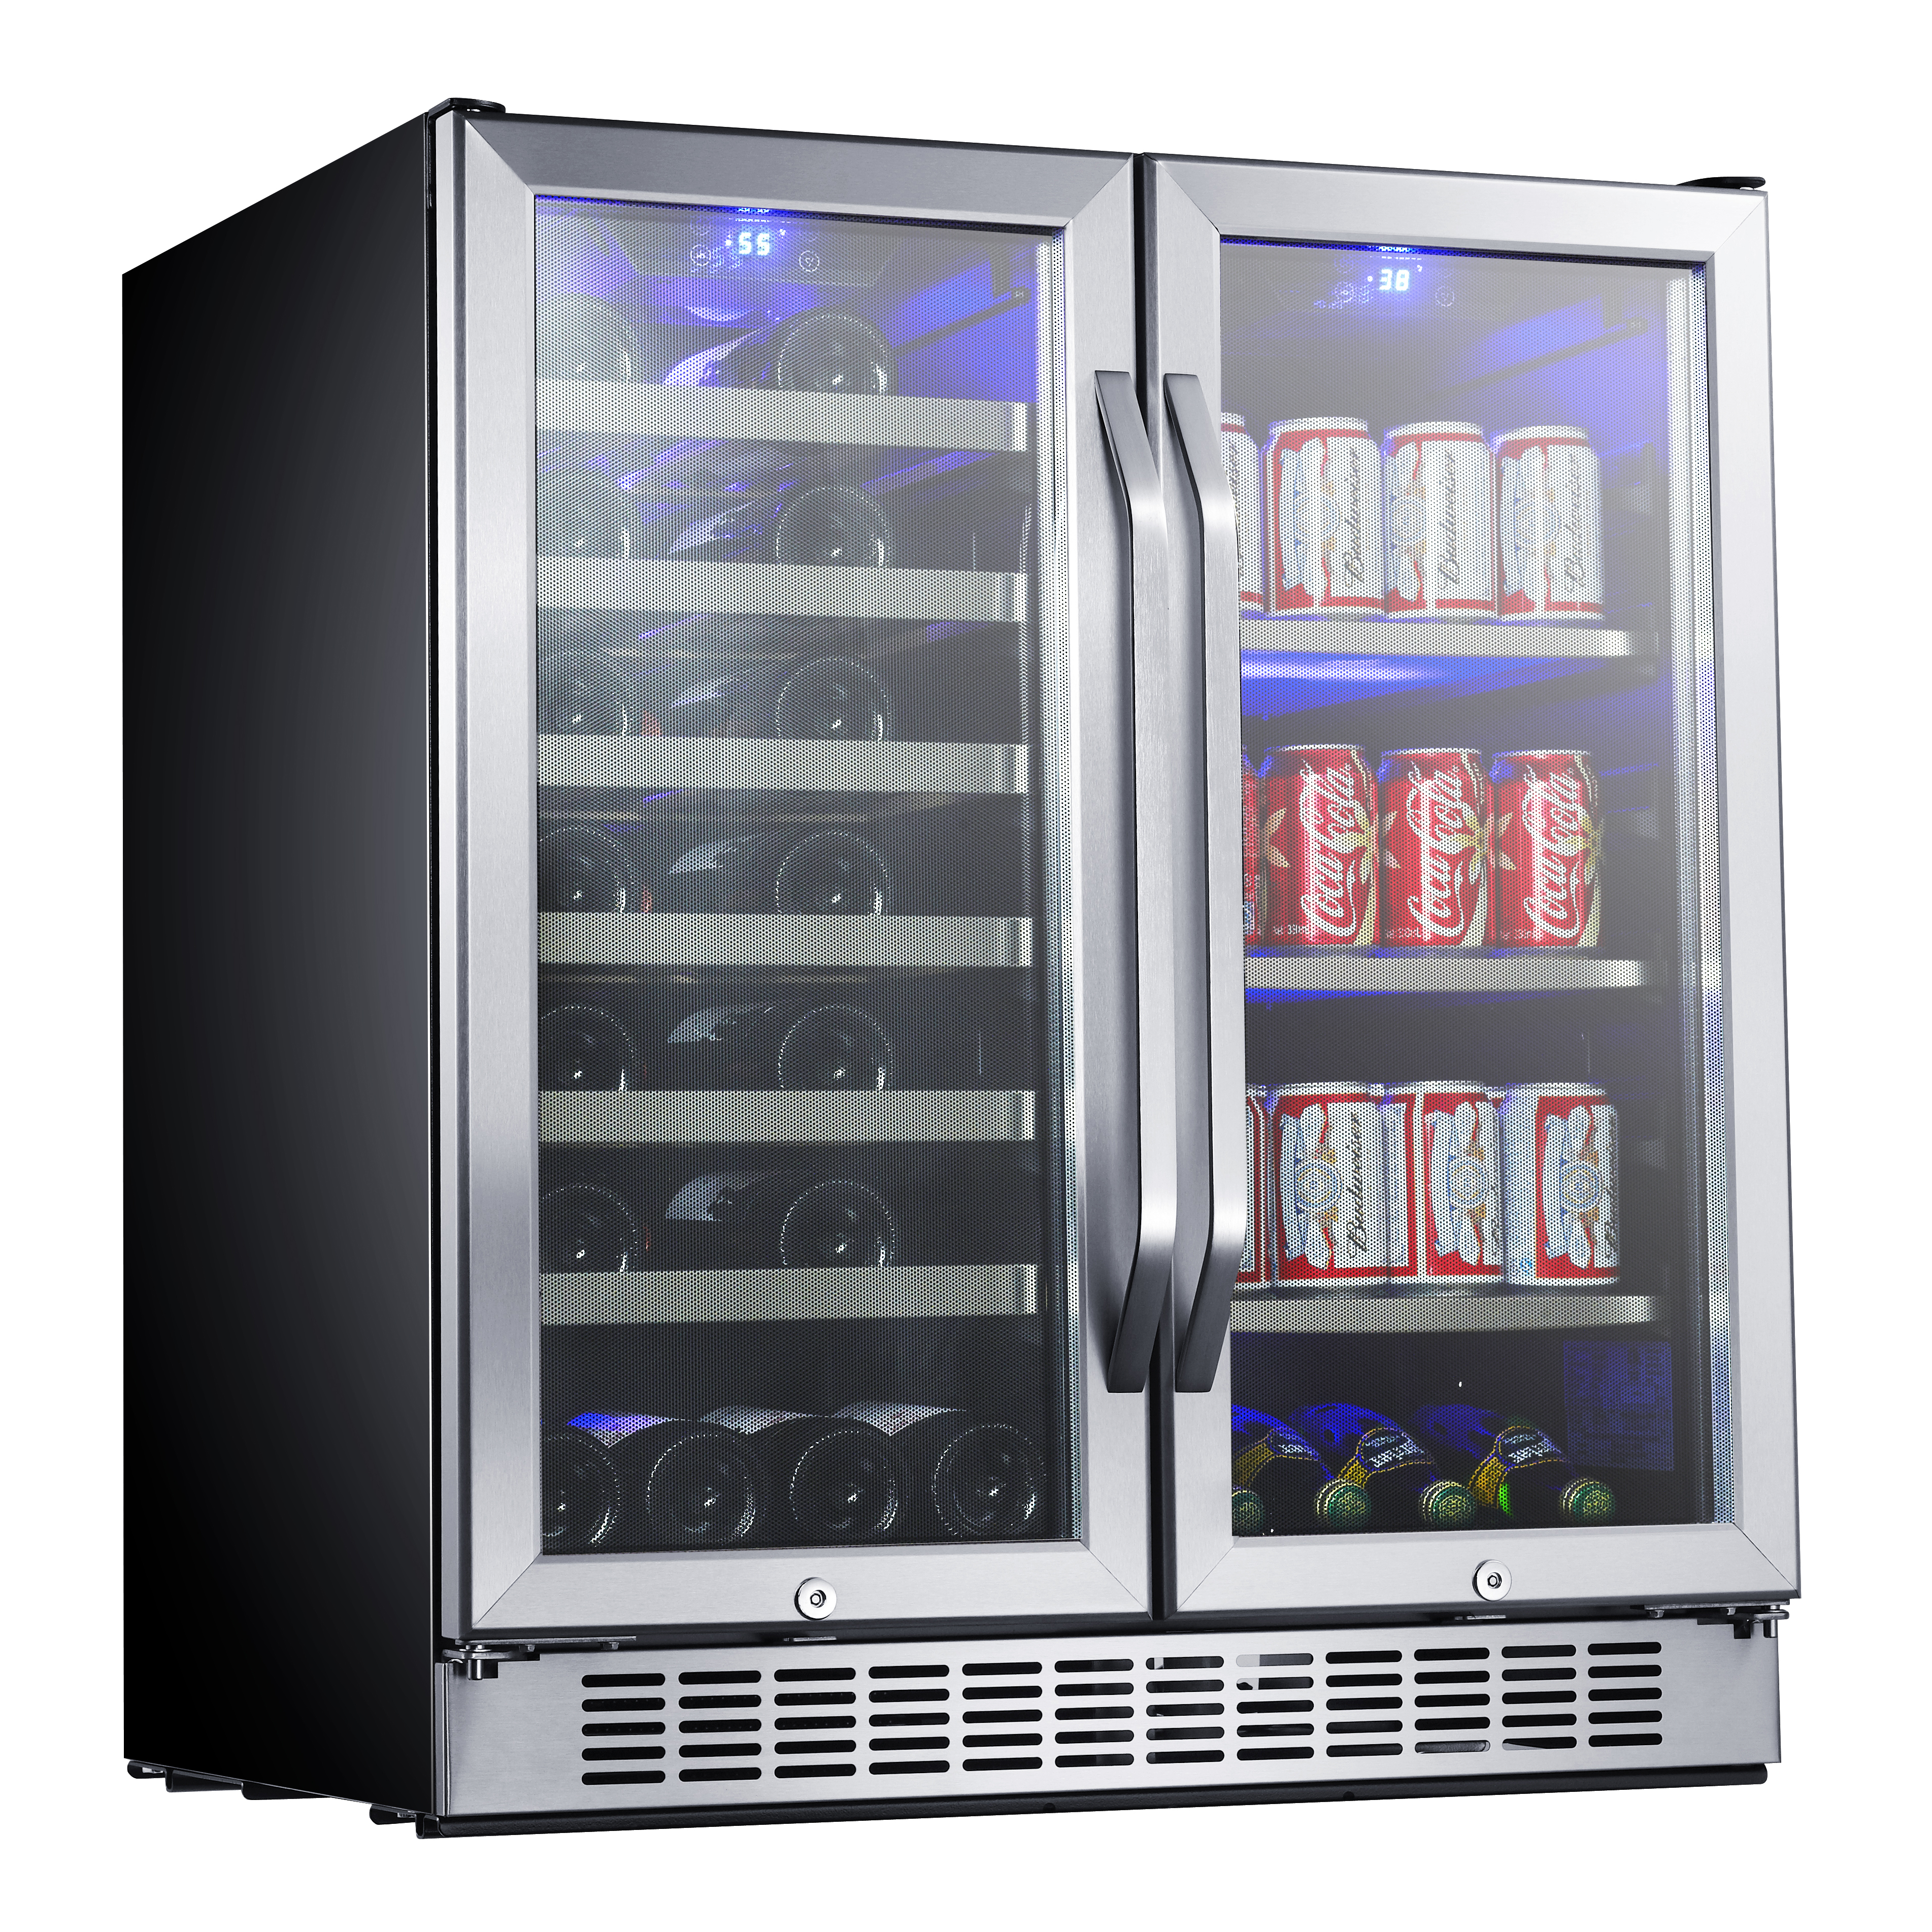 EdgeStar 30 Built-In Dual Zone Wine and Beverage Cooler - CWB2886FD